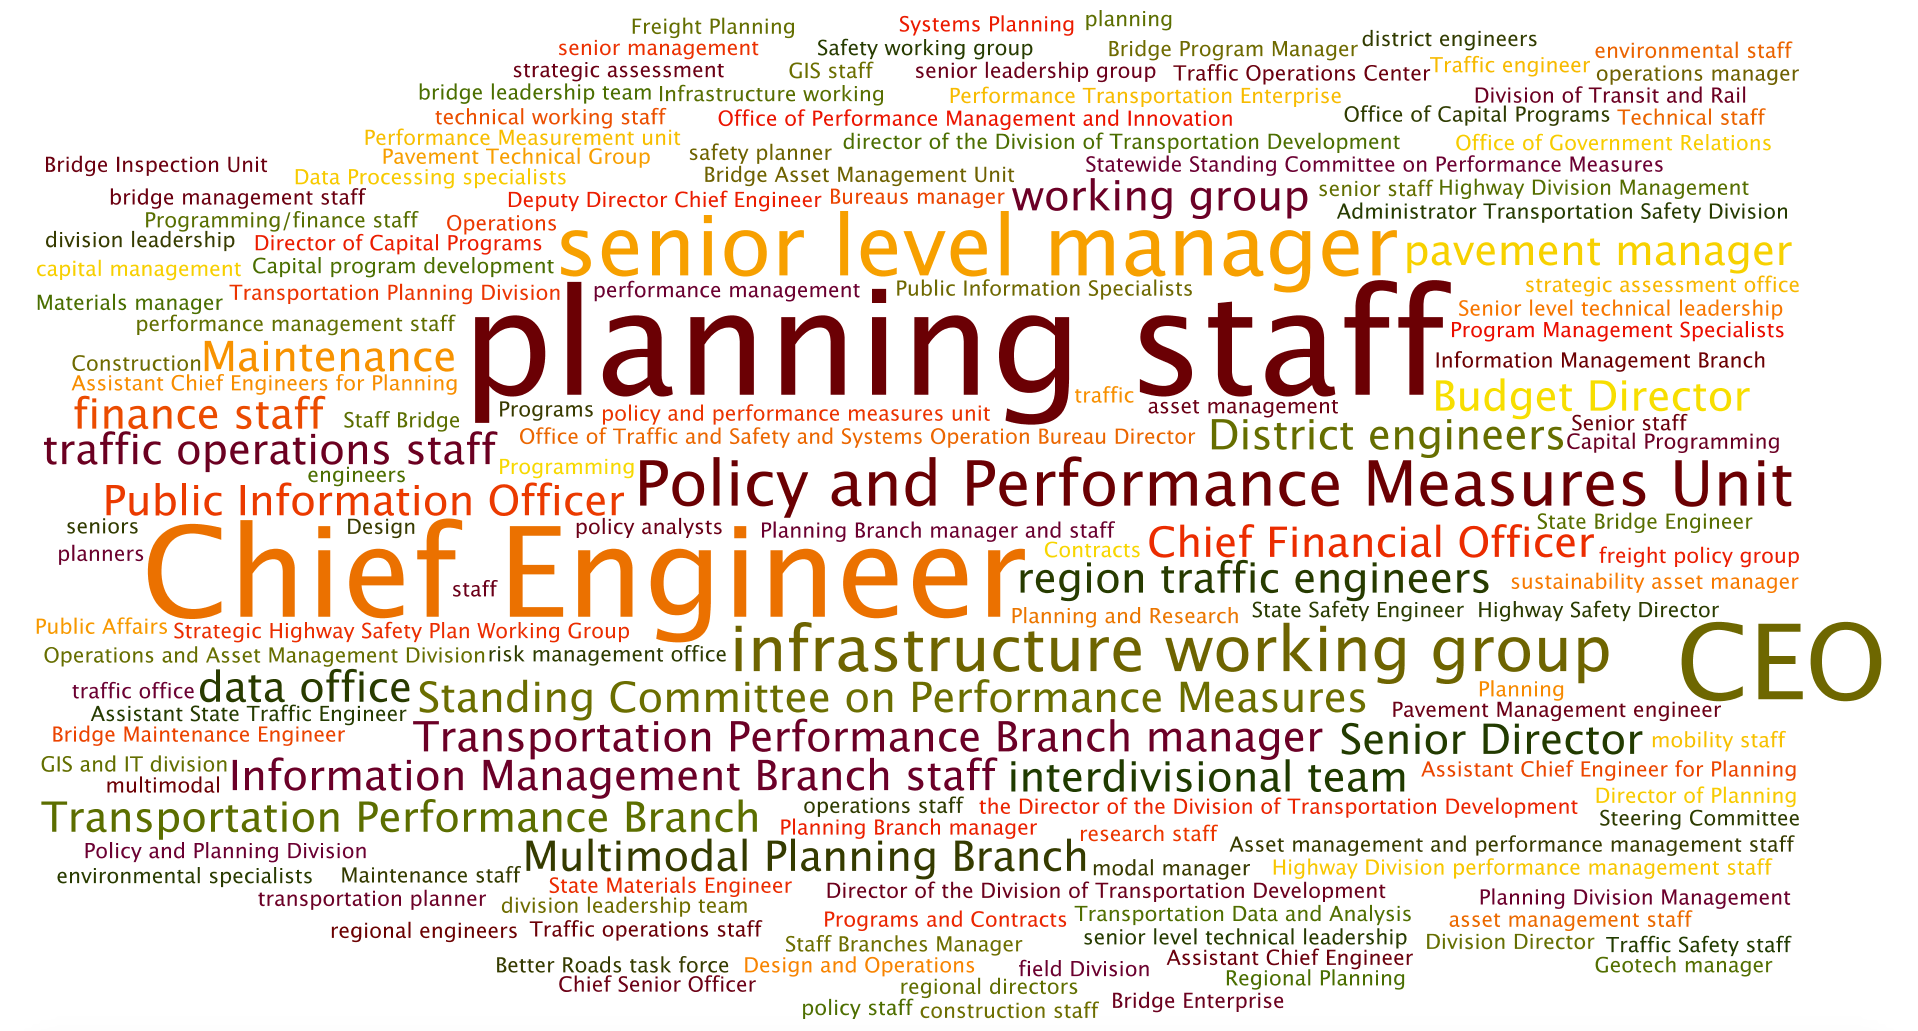 Word cloud. Largest words are planning staff, chief engineer, CEO, senior level manager, policy and performance measures unit.